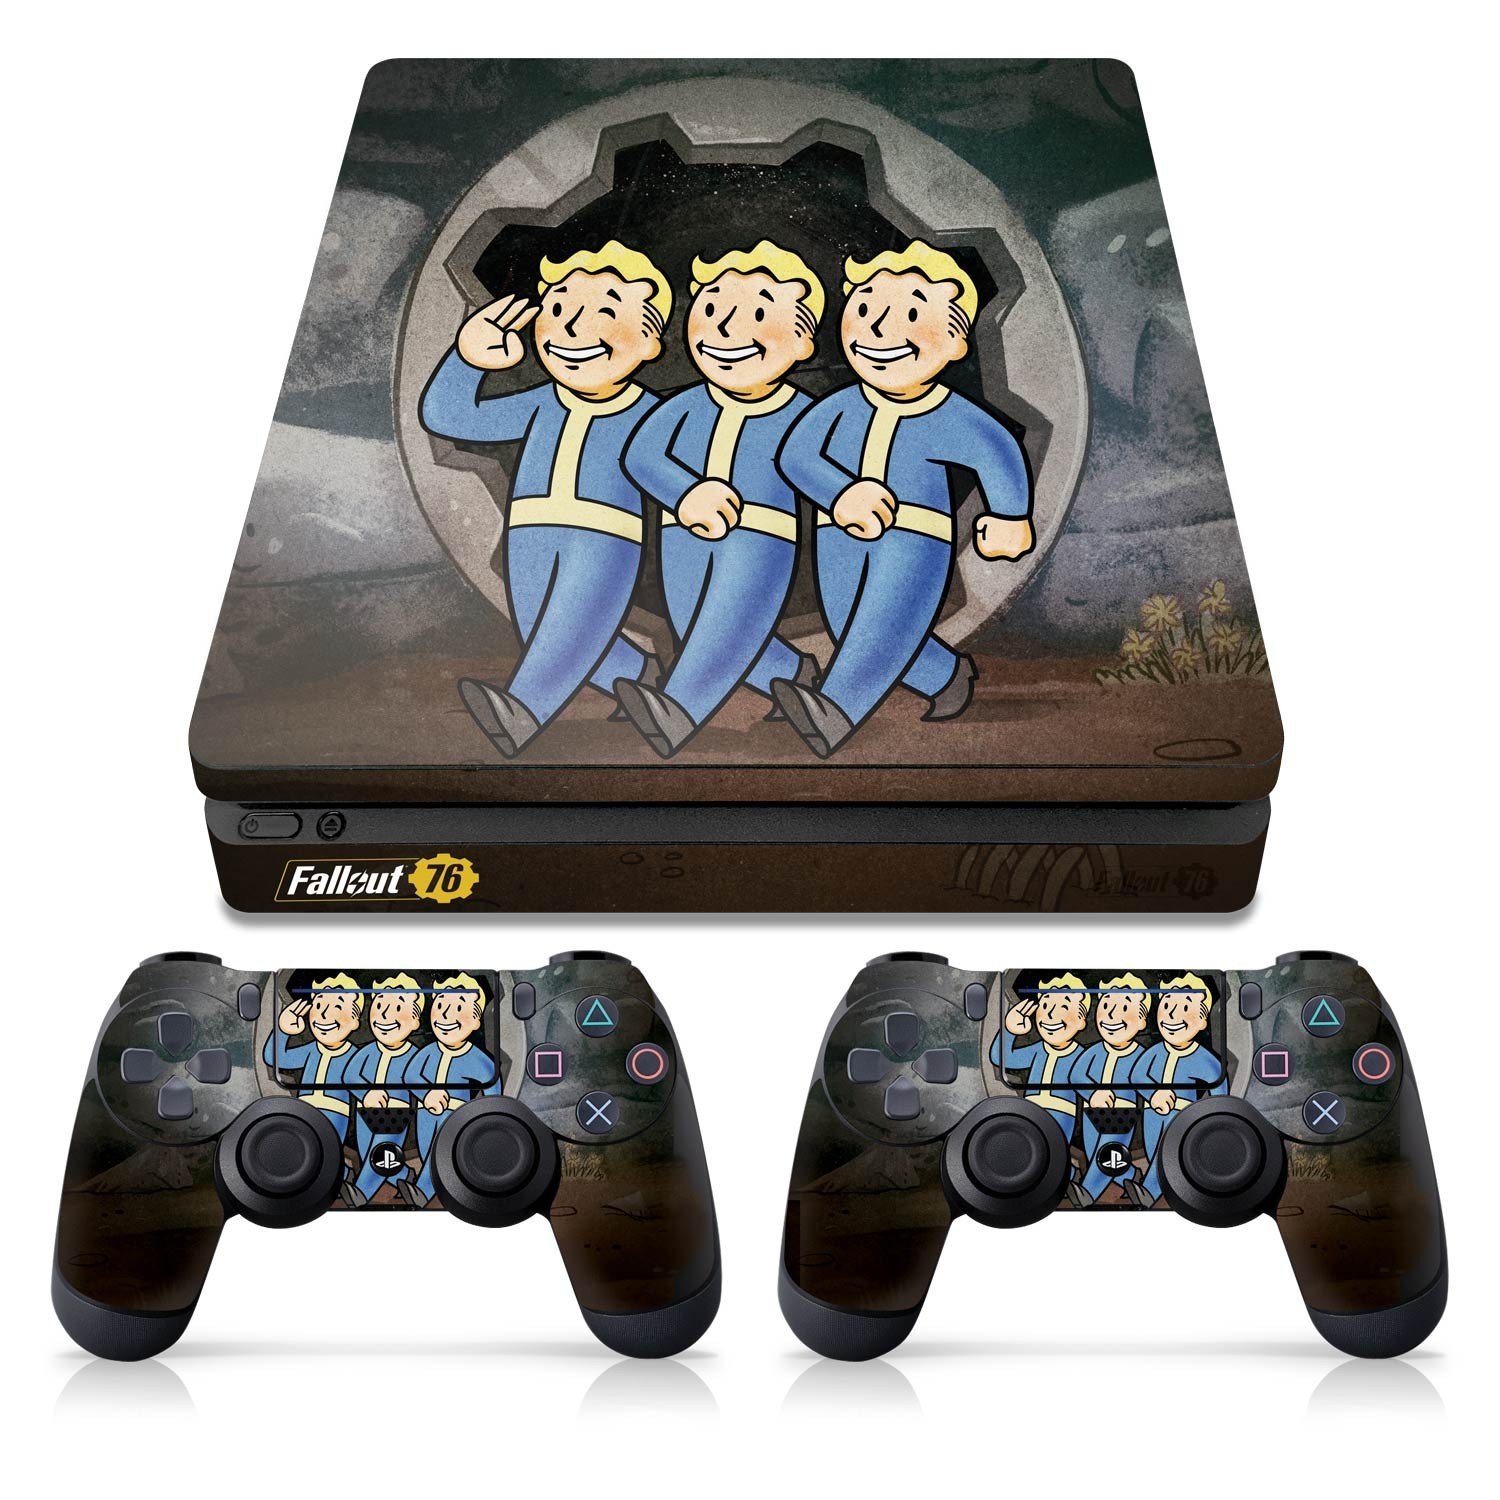 Officially Licensed Console Skin Bundle for PS4 Slim - Fallout 76 - Vault Boys